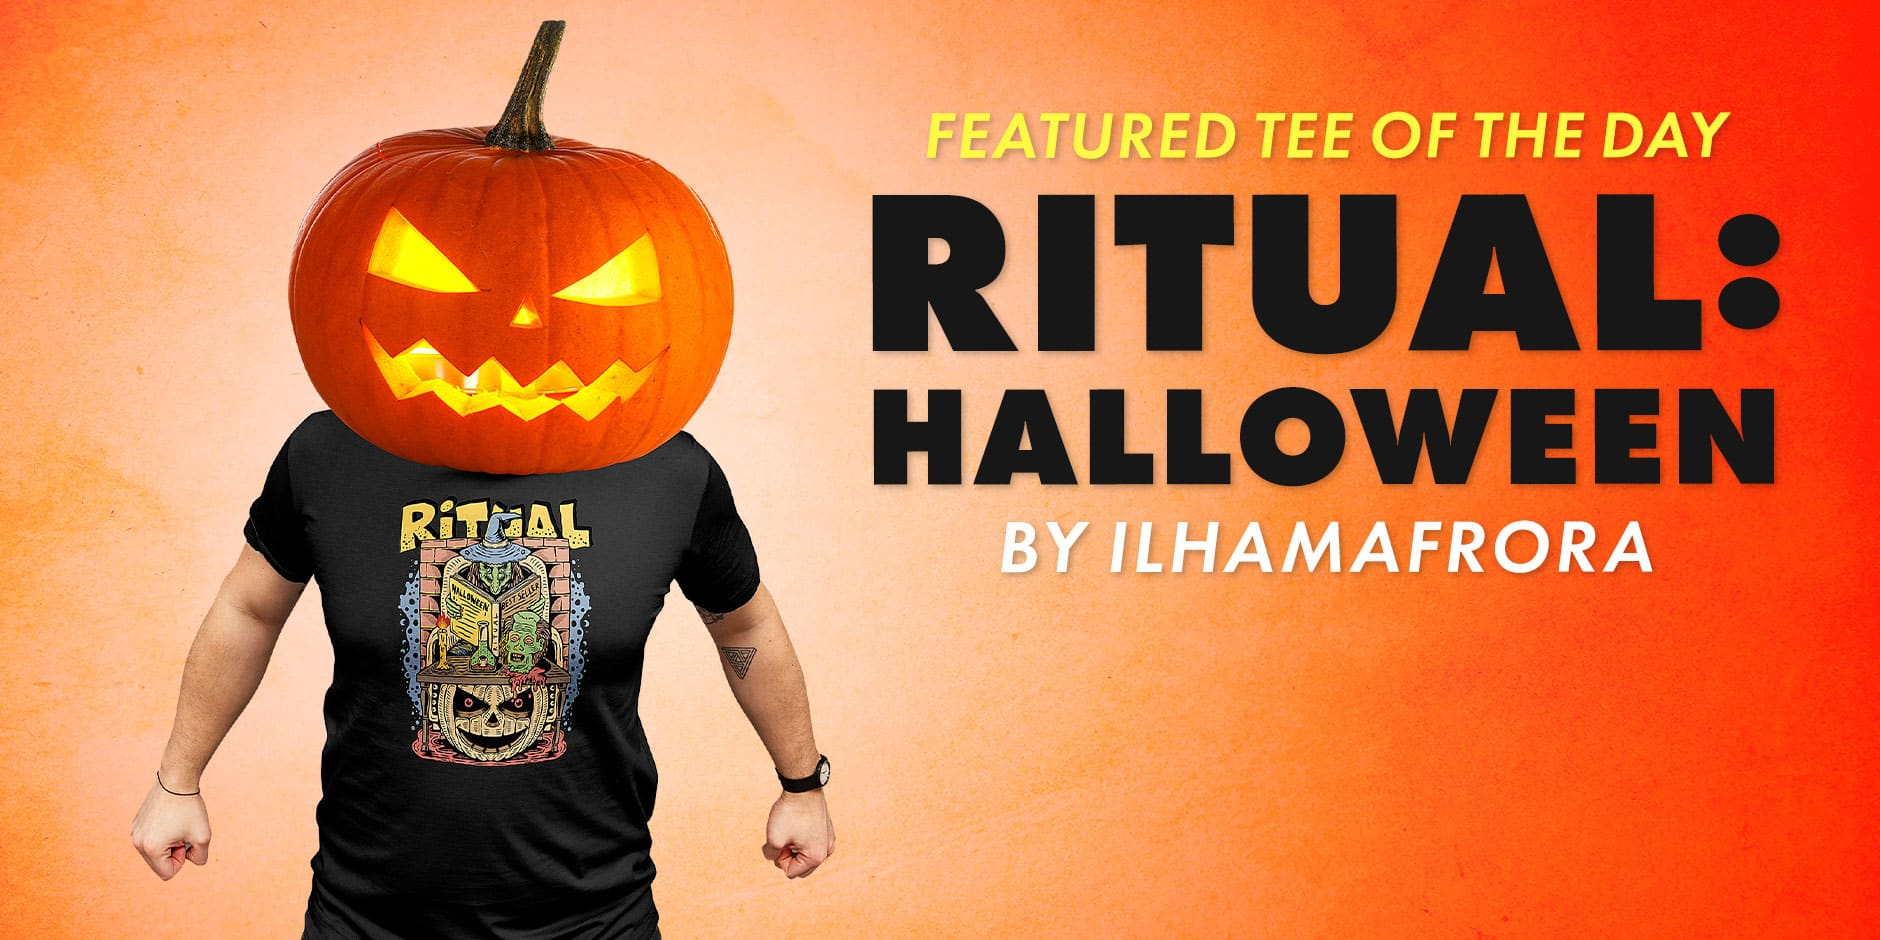 Featured Design: Ritual Halloween by ilhamafrora